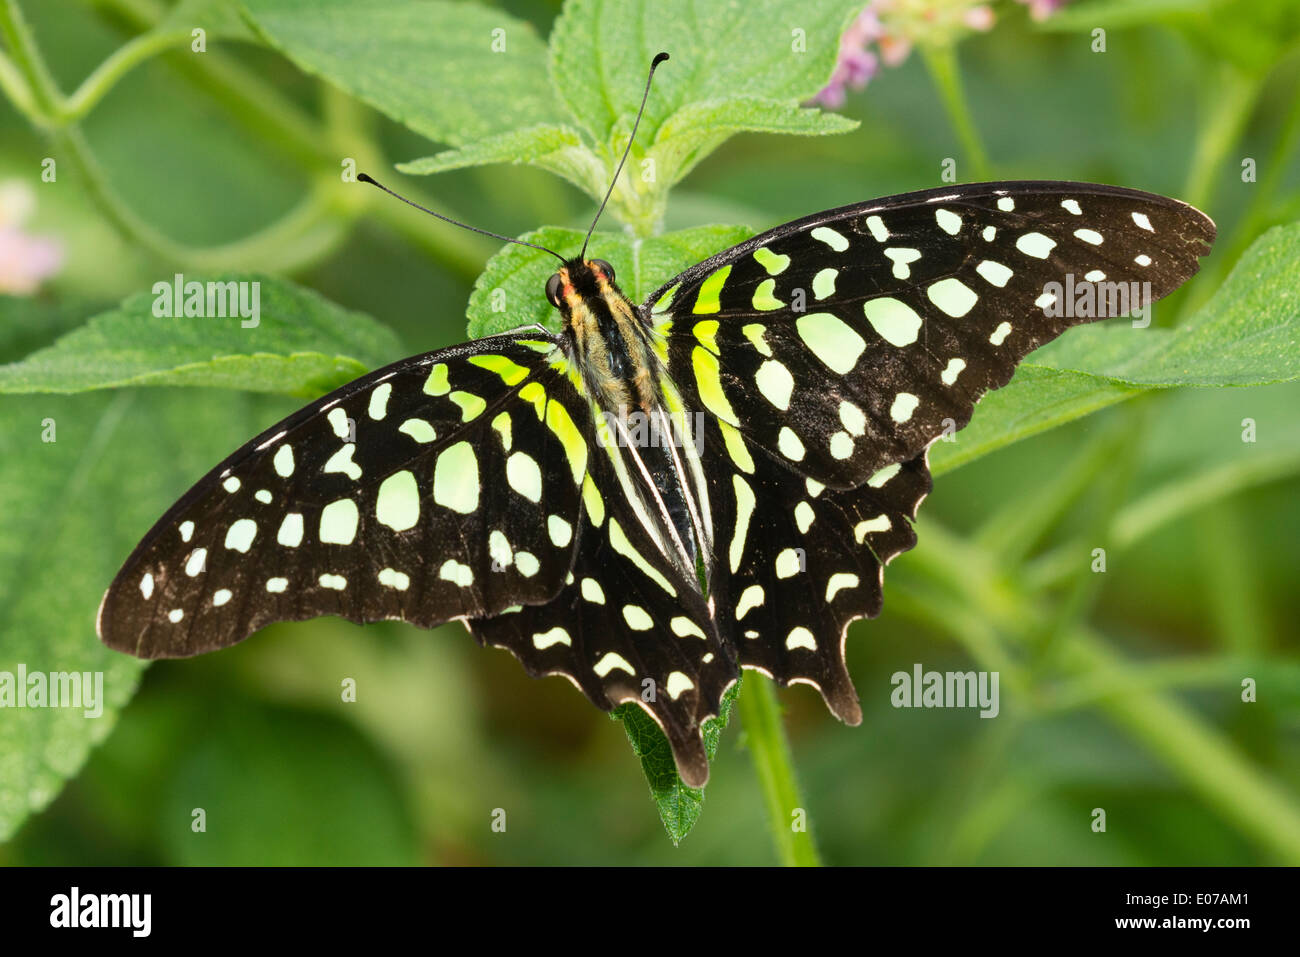 A Green-spotted Triangle feeding - Stock Image